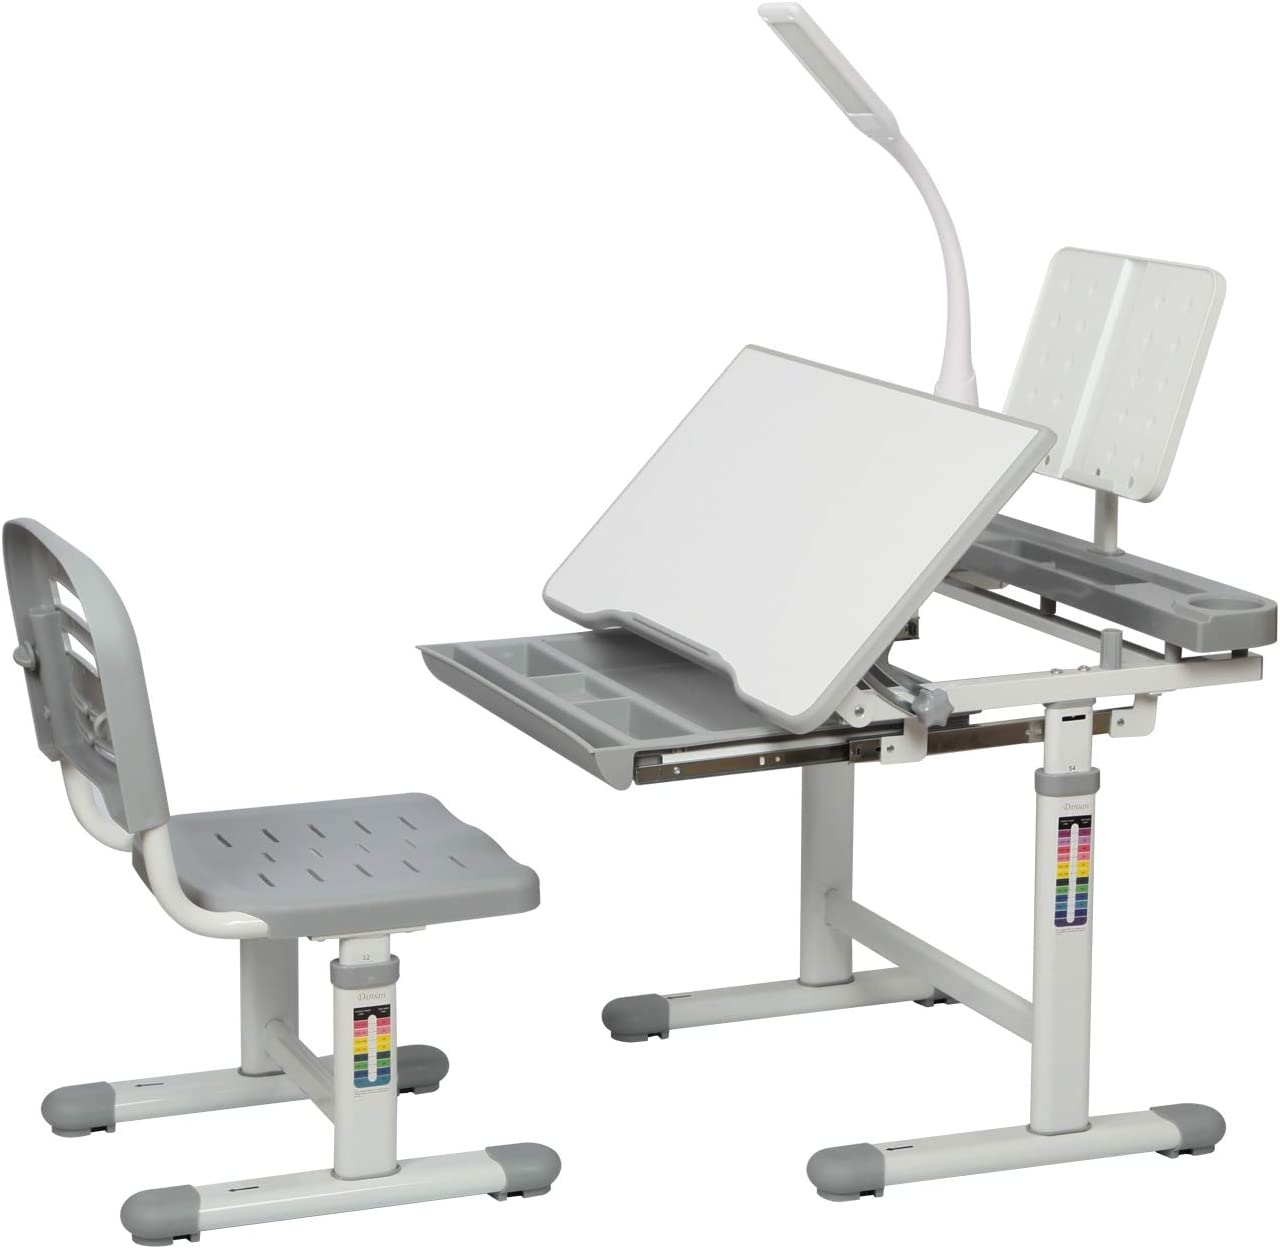 Diroan Kids Functional Desk and Height Chi Adjustable New arrival Chair free Set